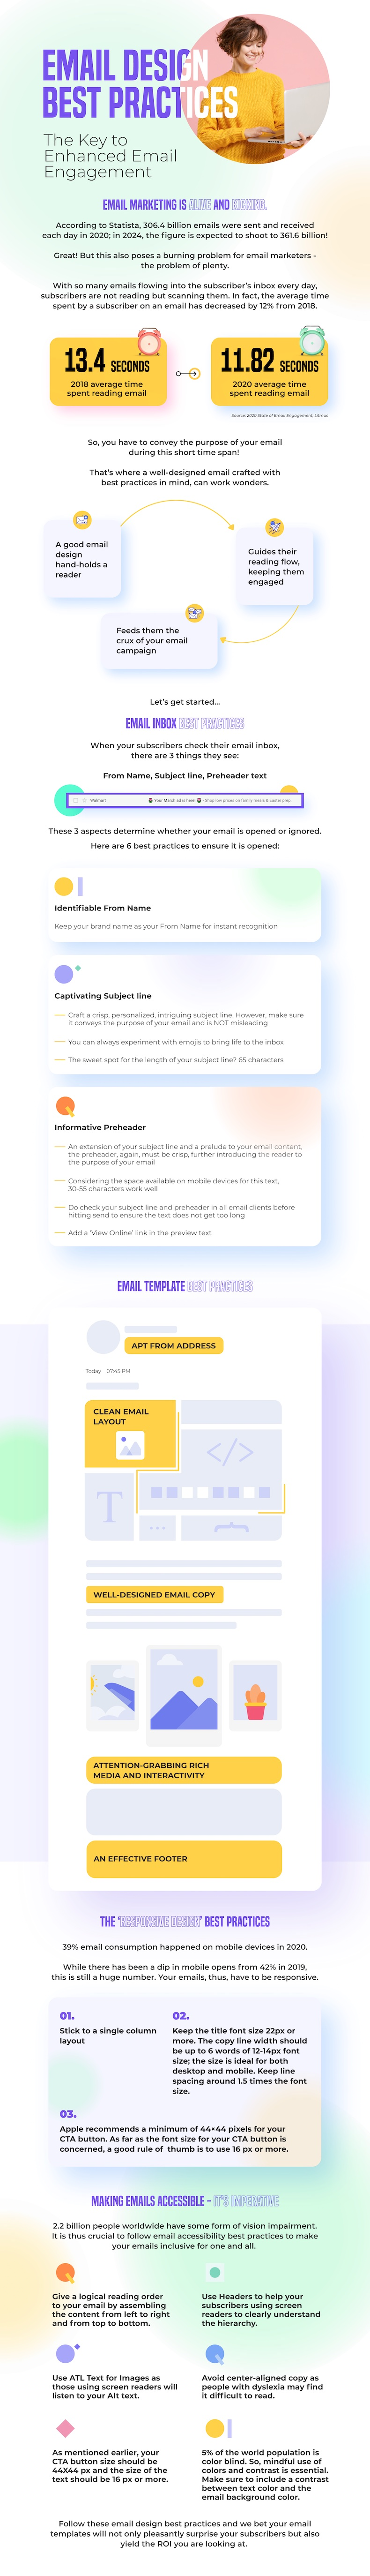 Email design best-practices infographic